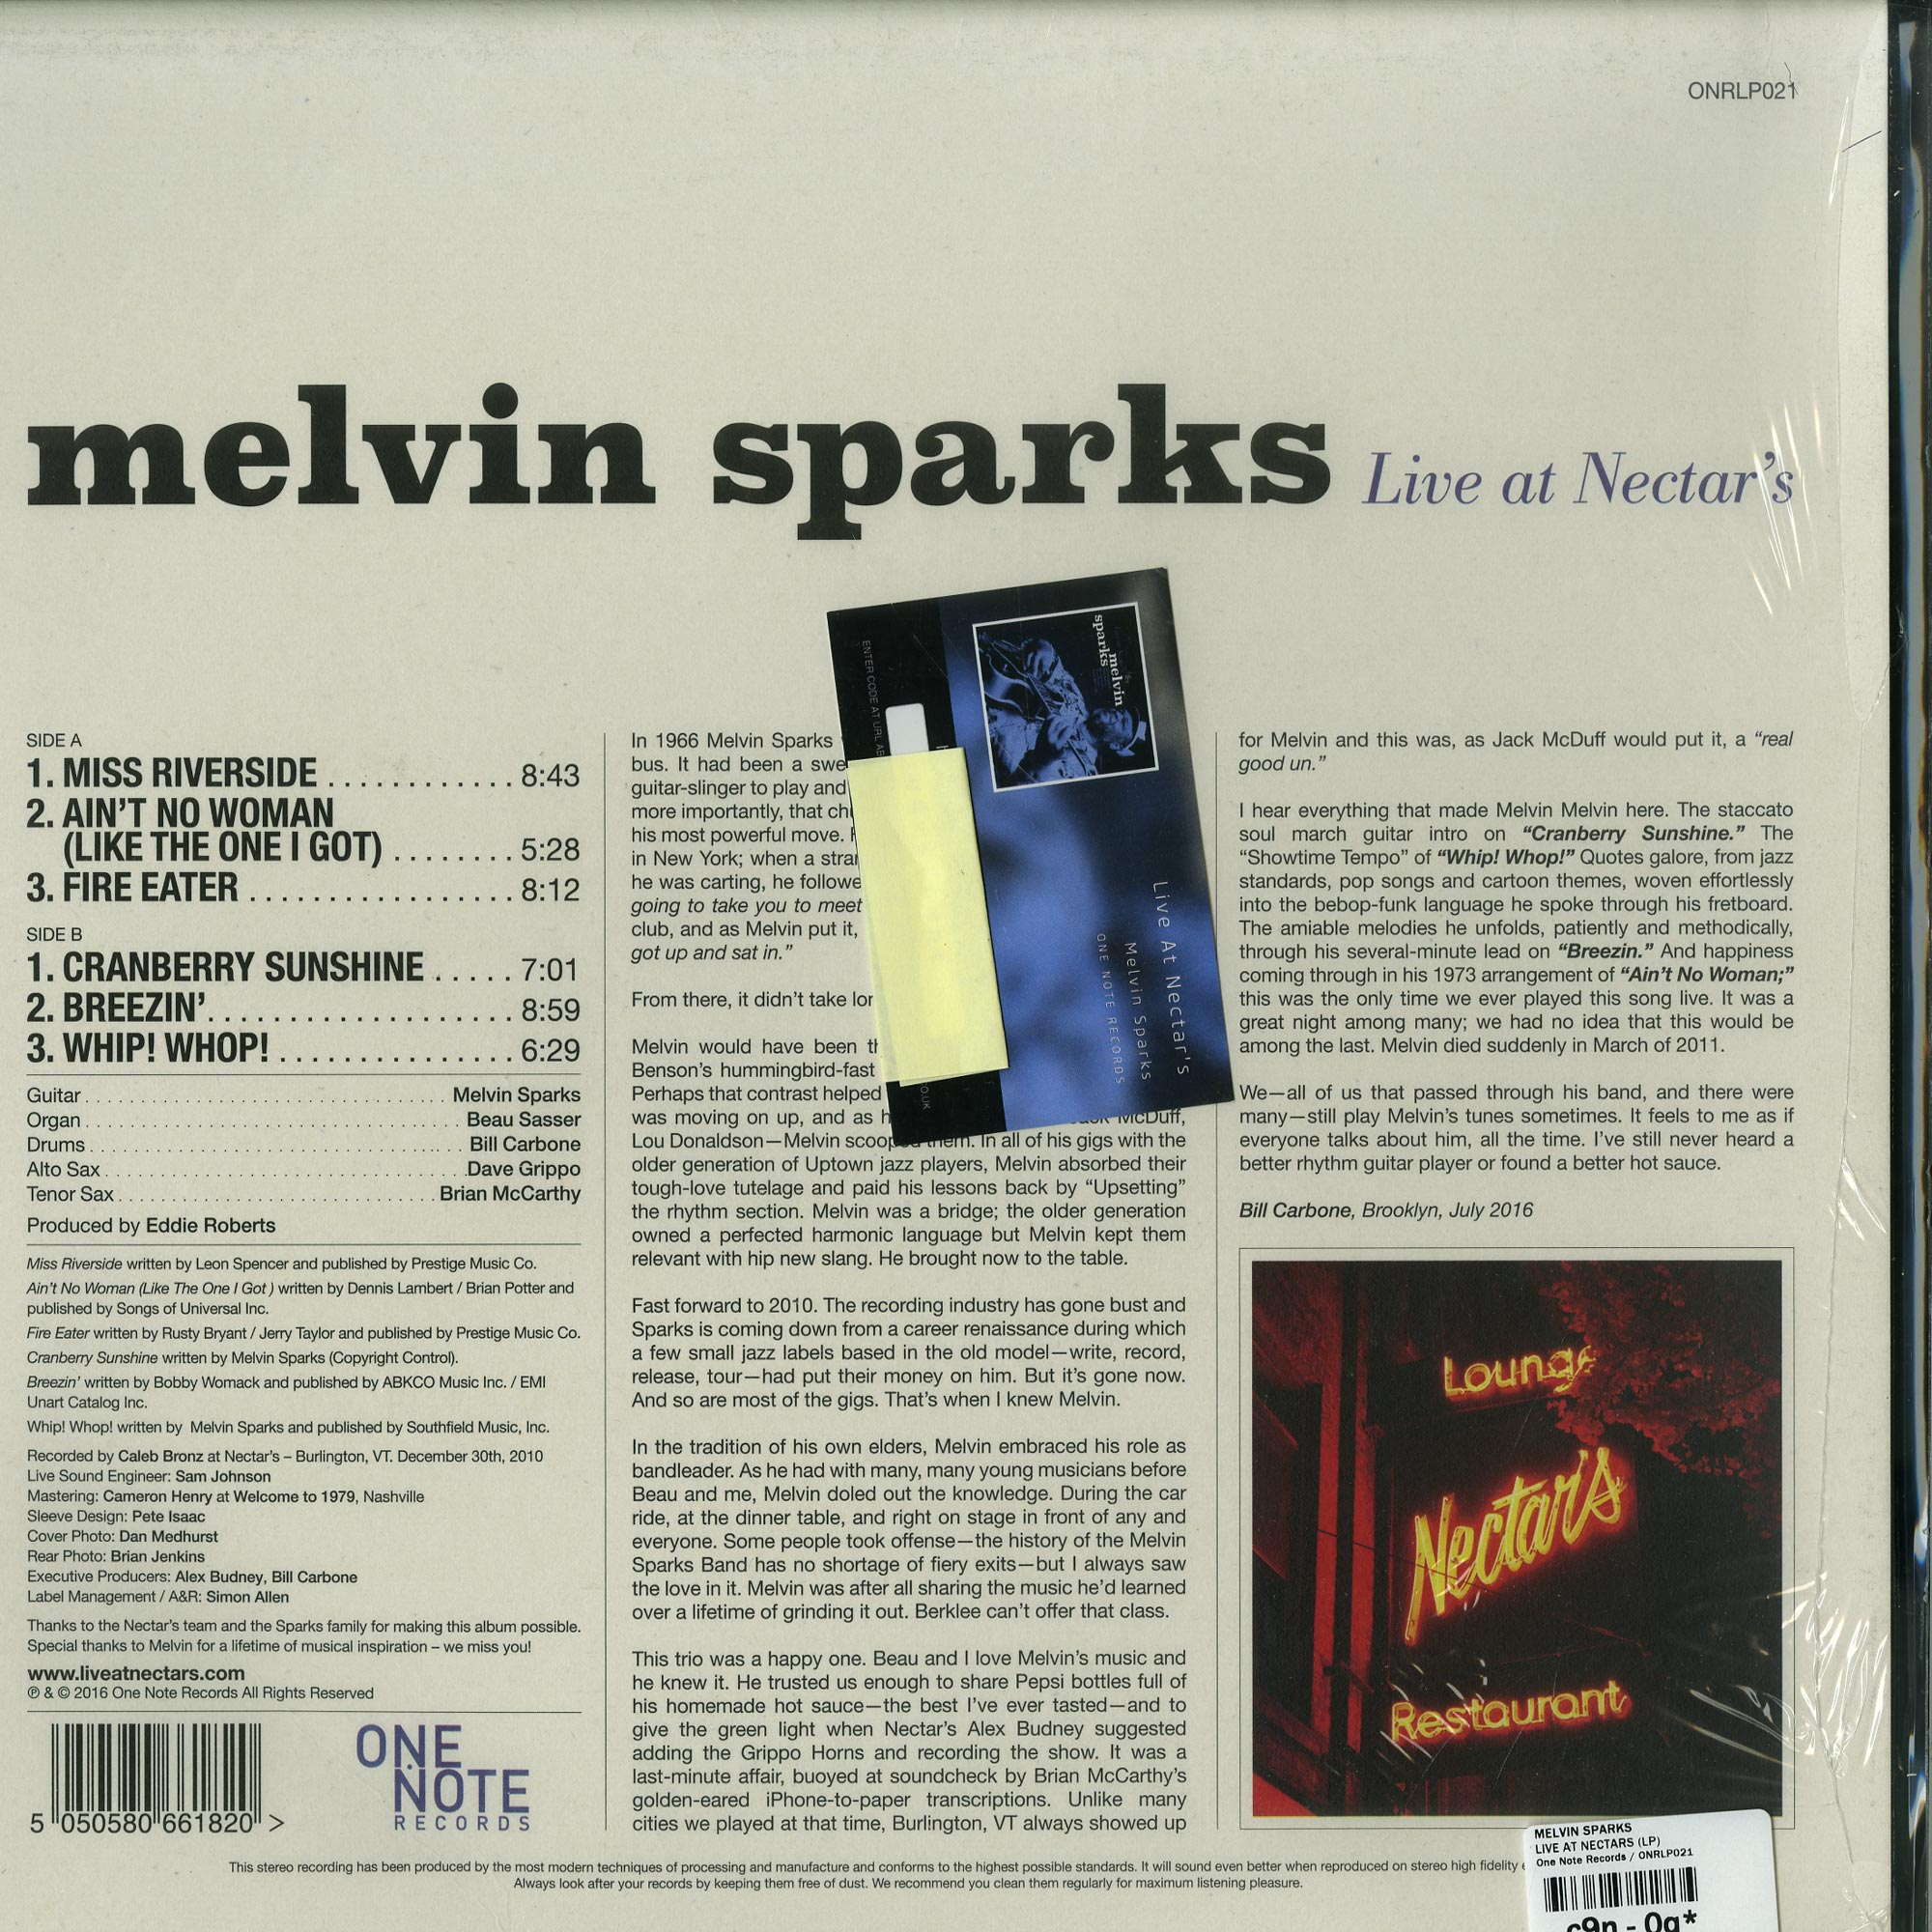 Melvin Sparks - Live at Nectar's (2010) // full Album stream